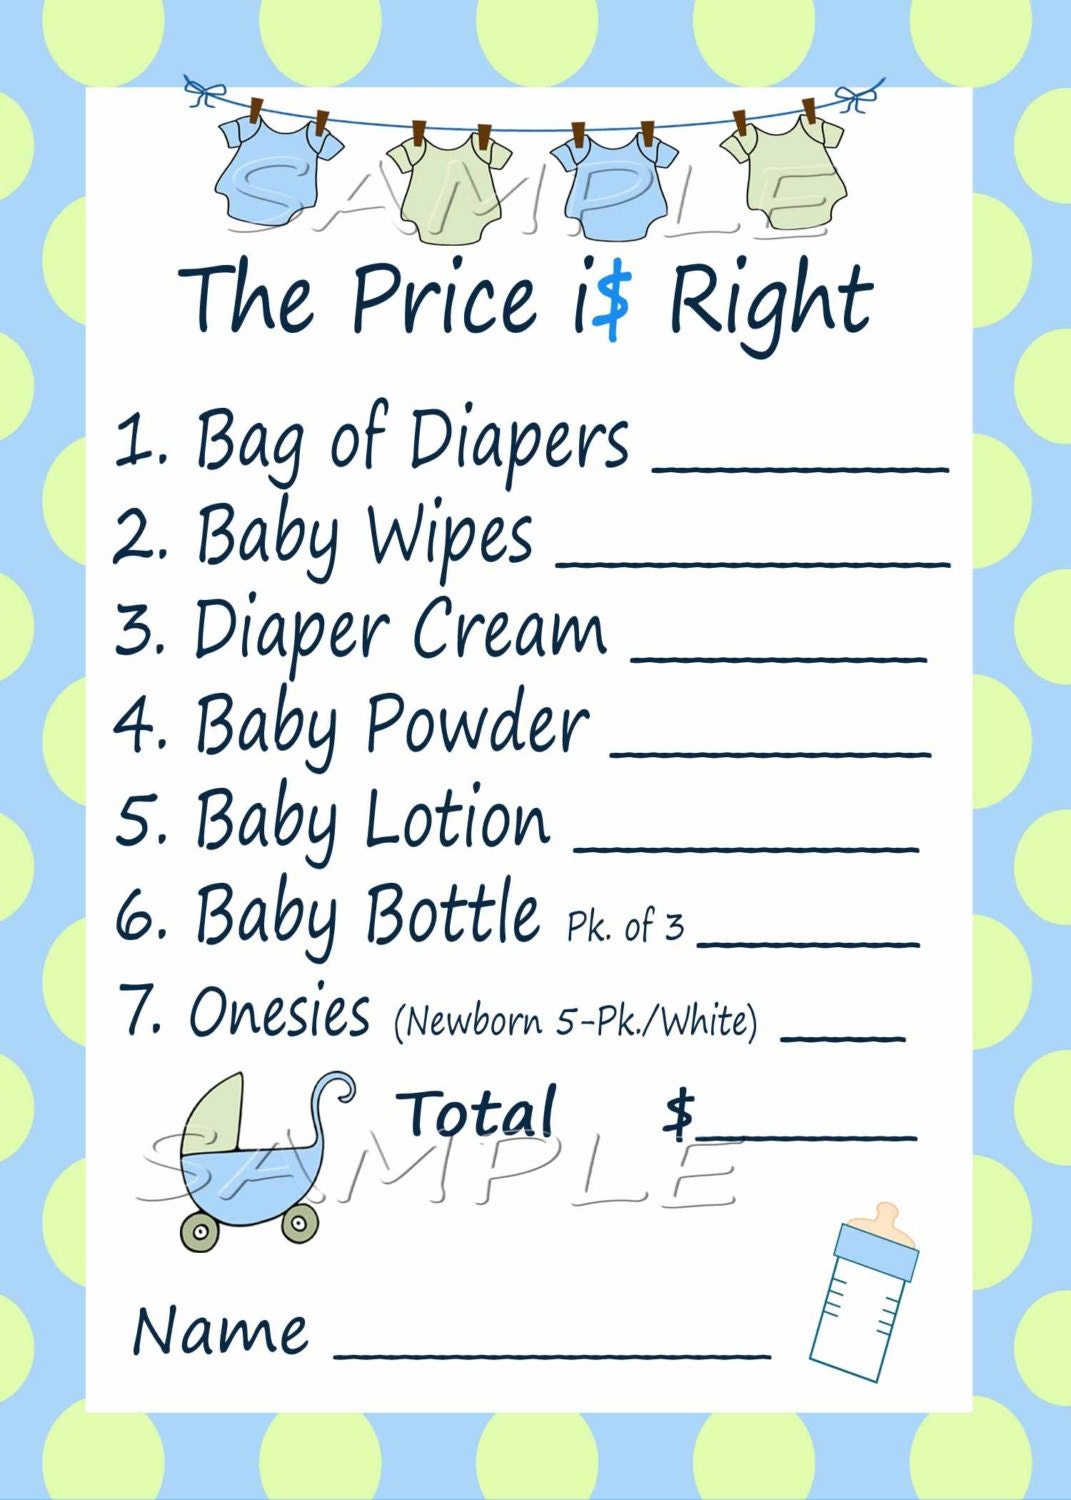 Clean image pertaining to baby shower price is right printable